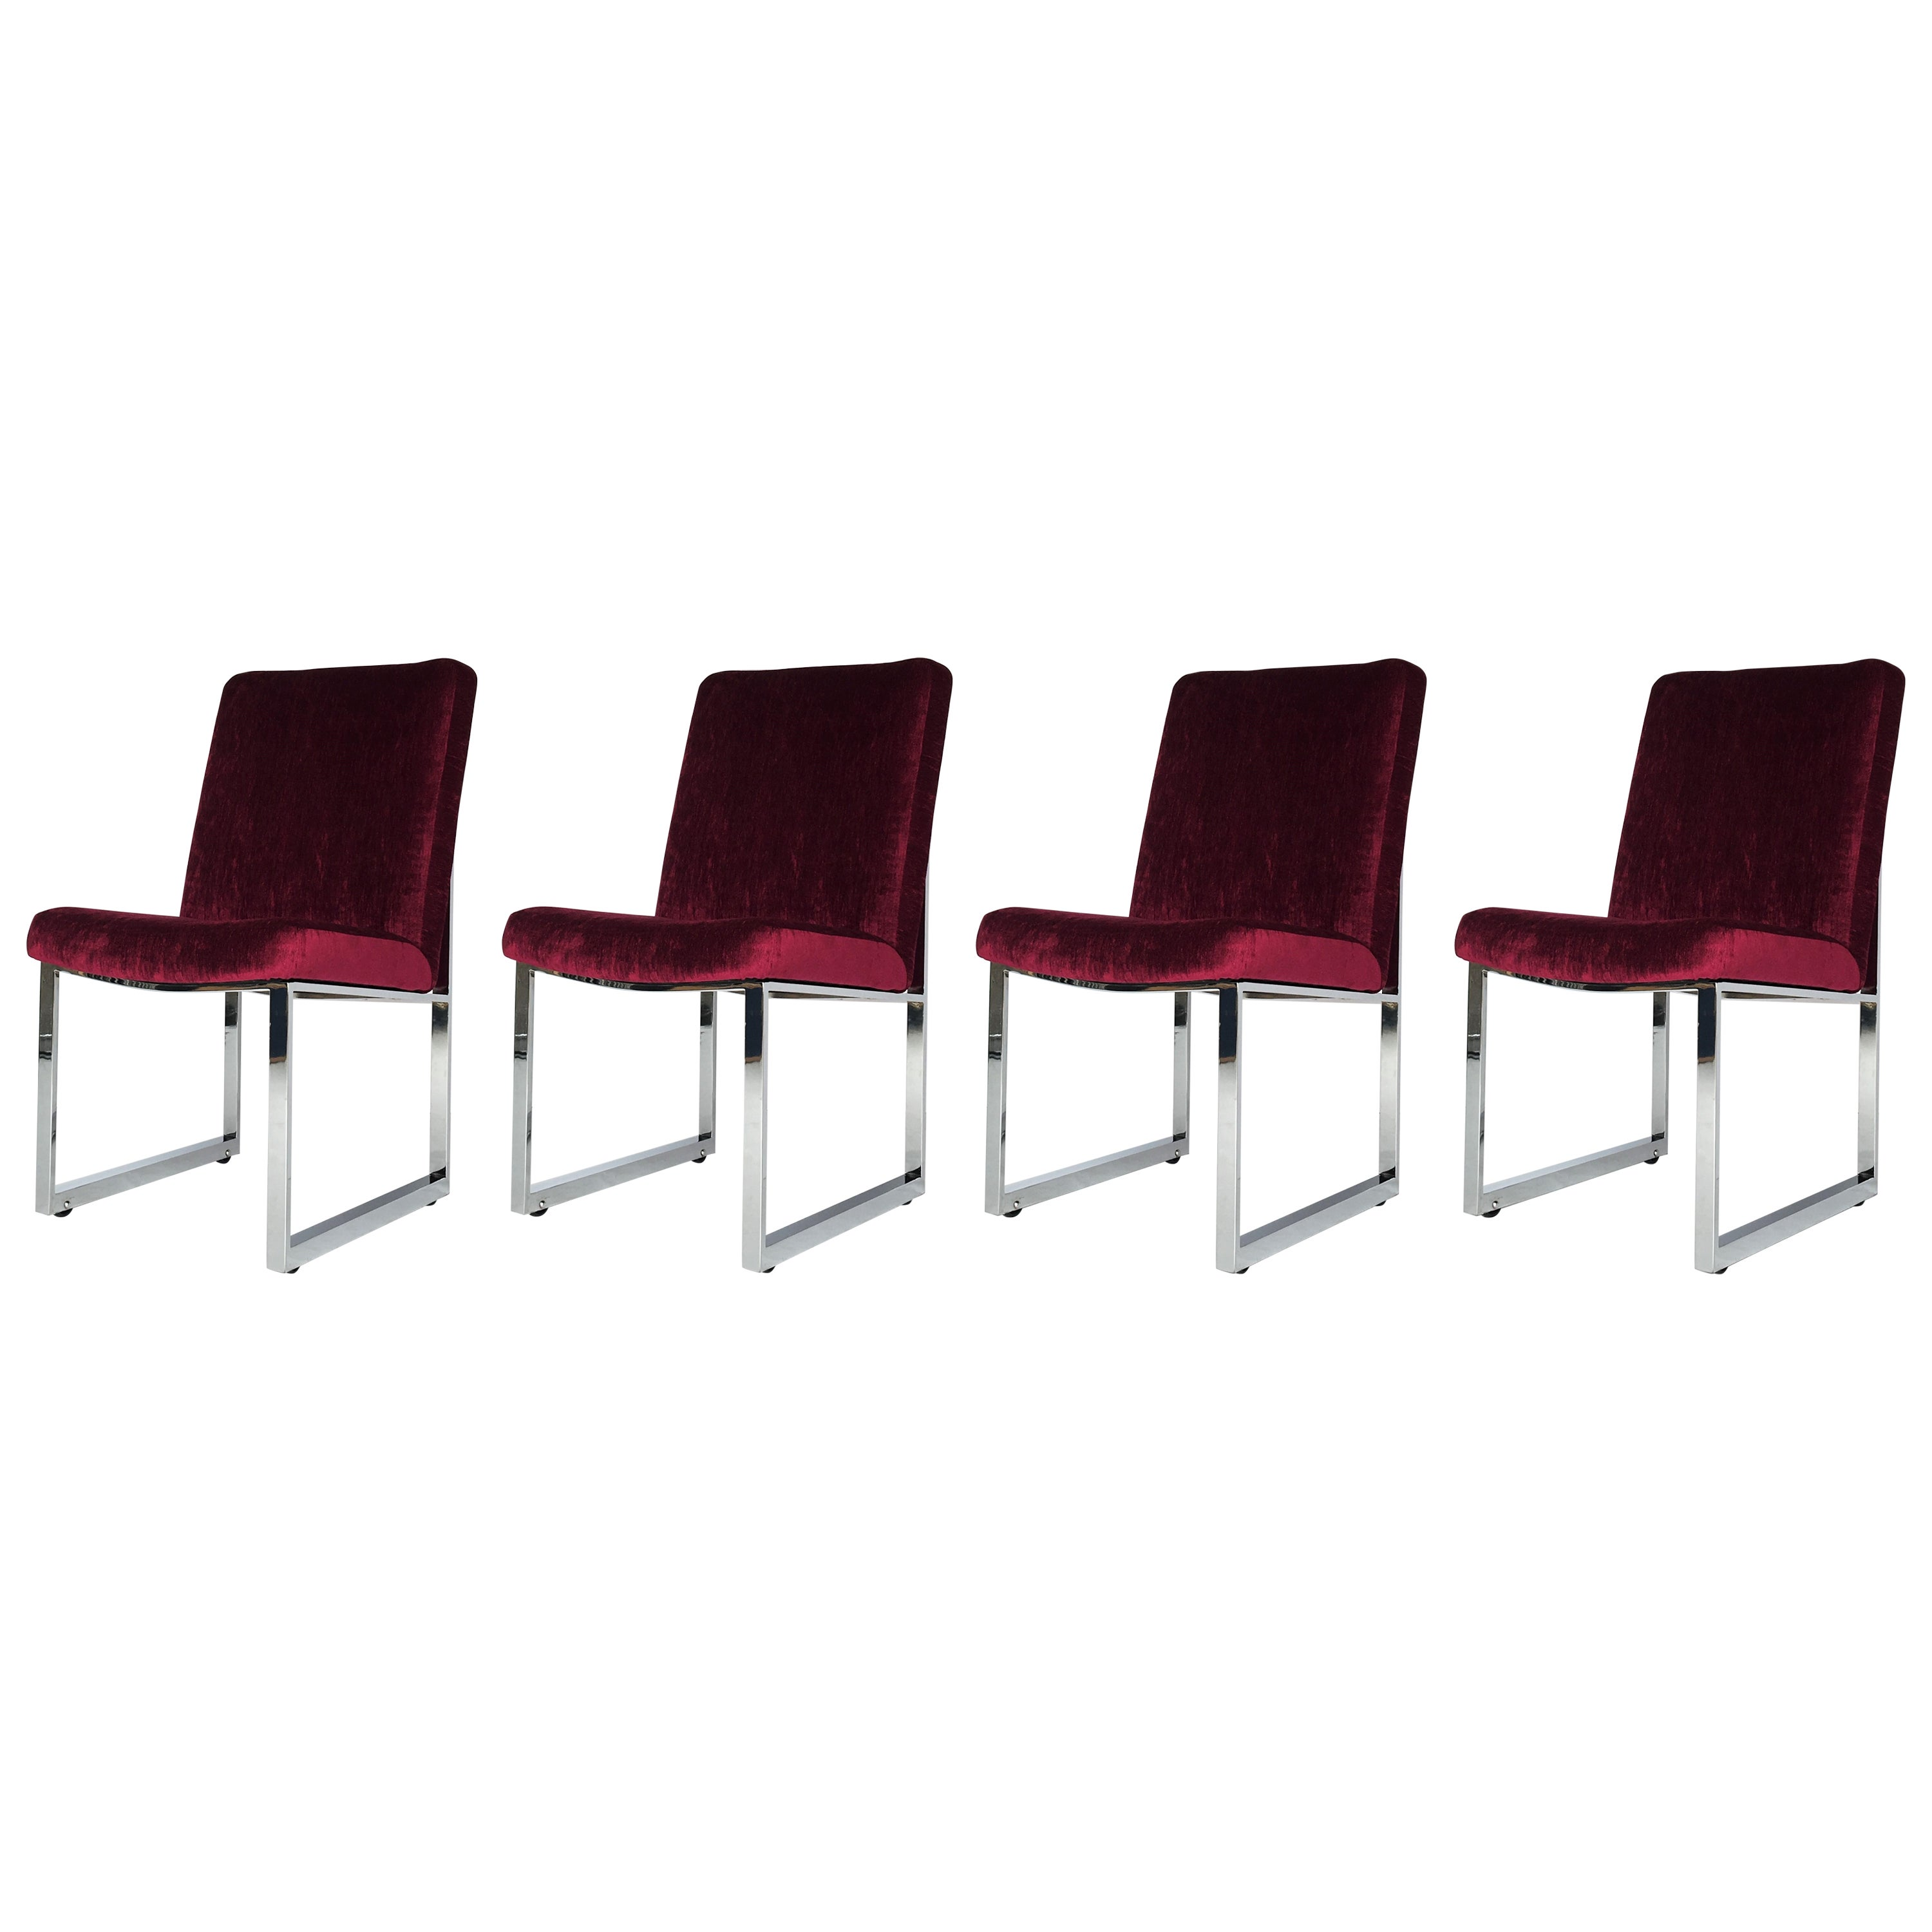 Flat-Bar Chrome Dining Chairs by Milo Baughman for Thayer Coggin